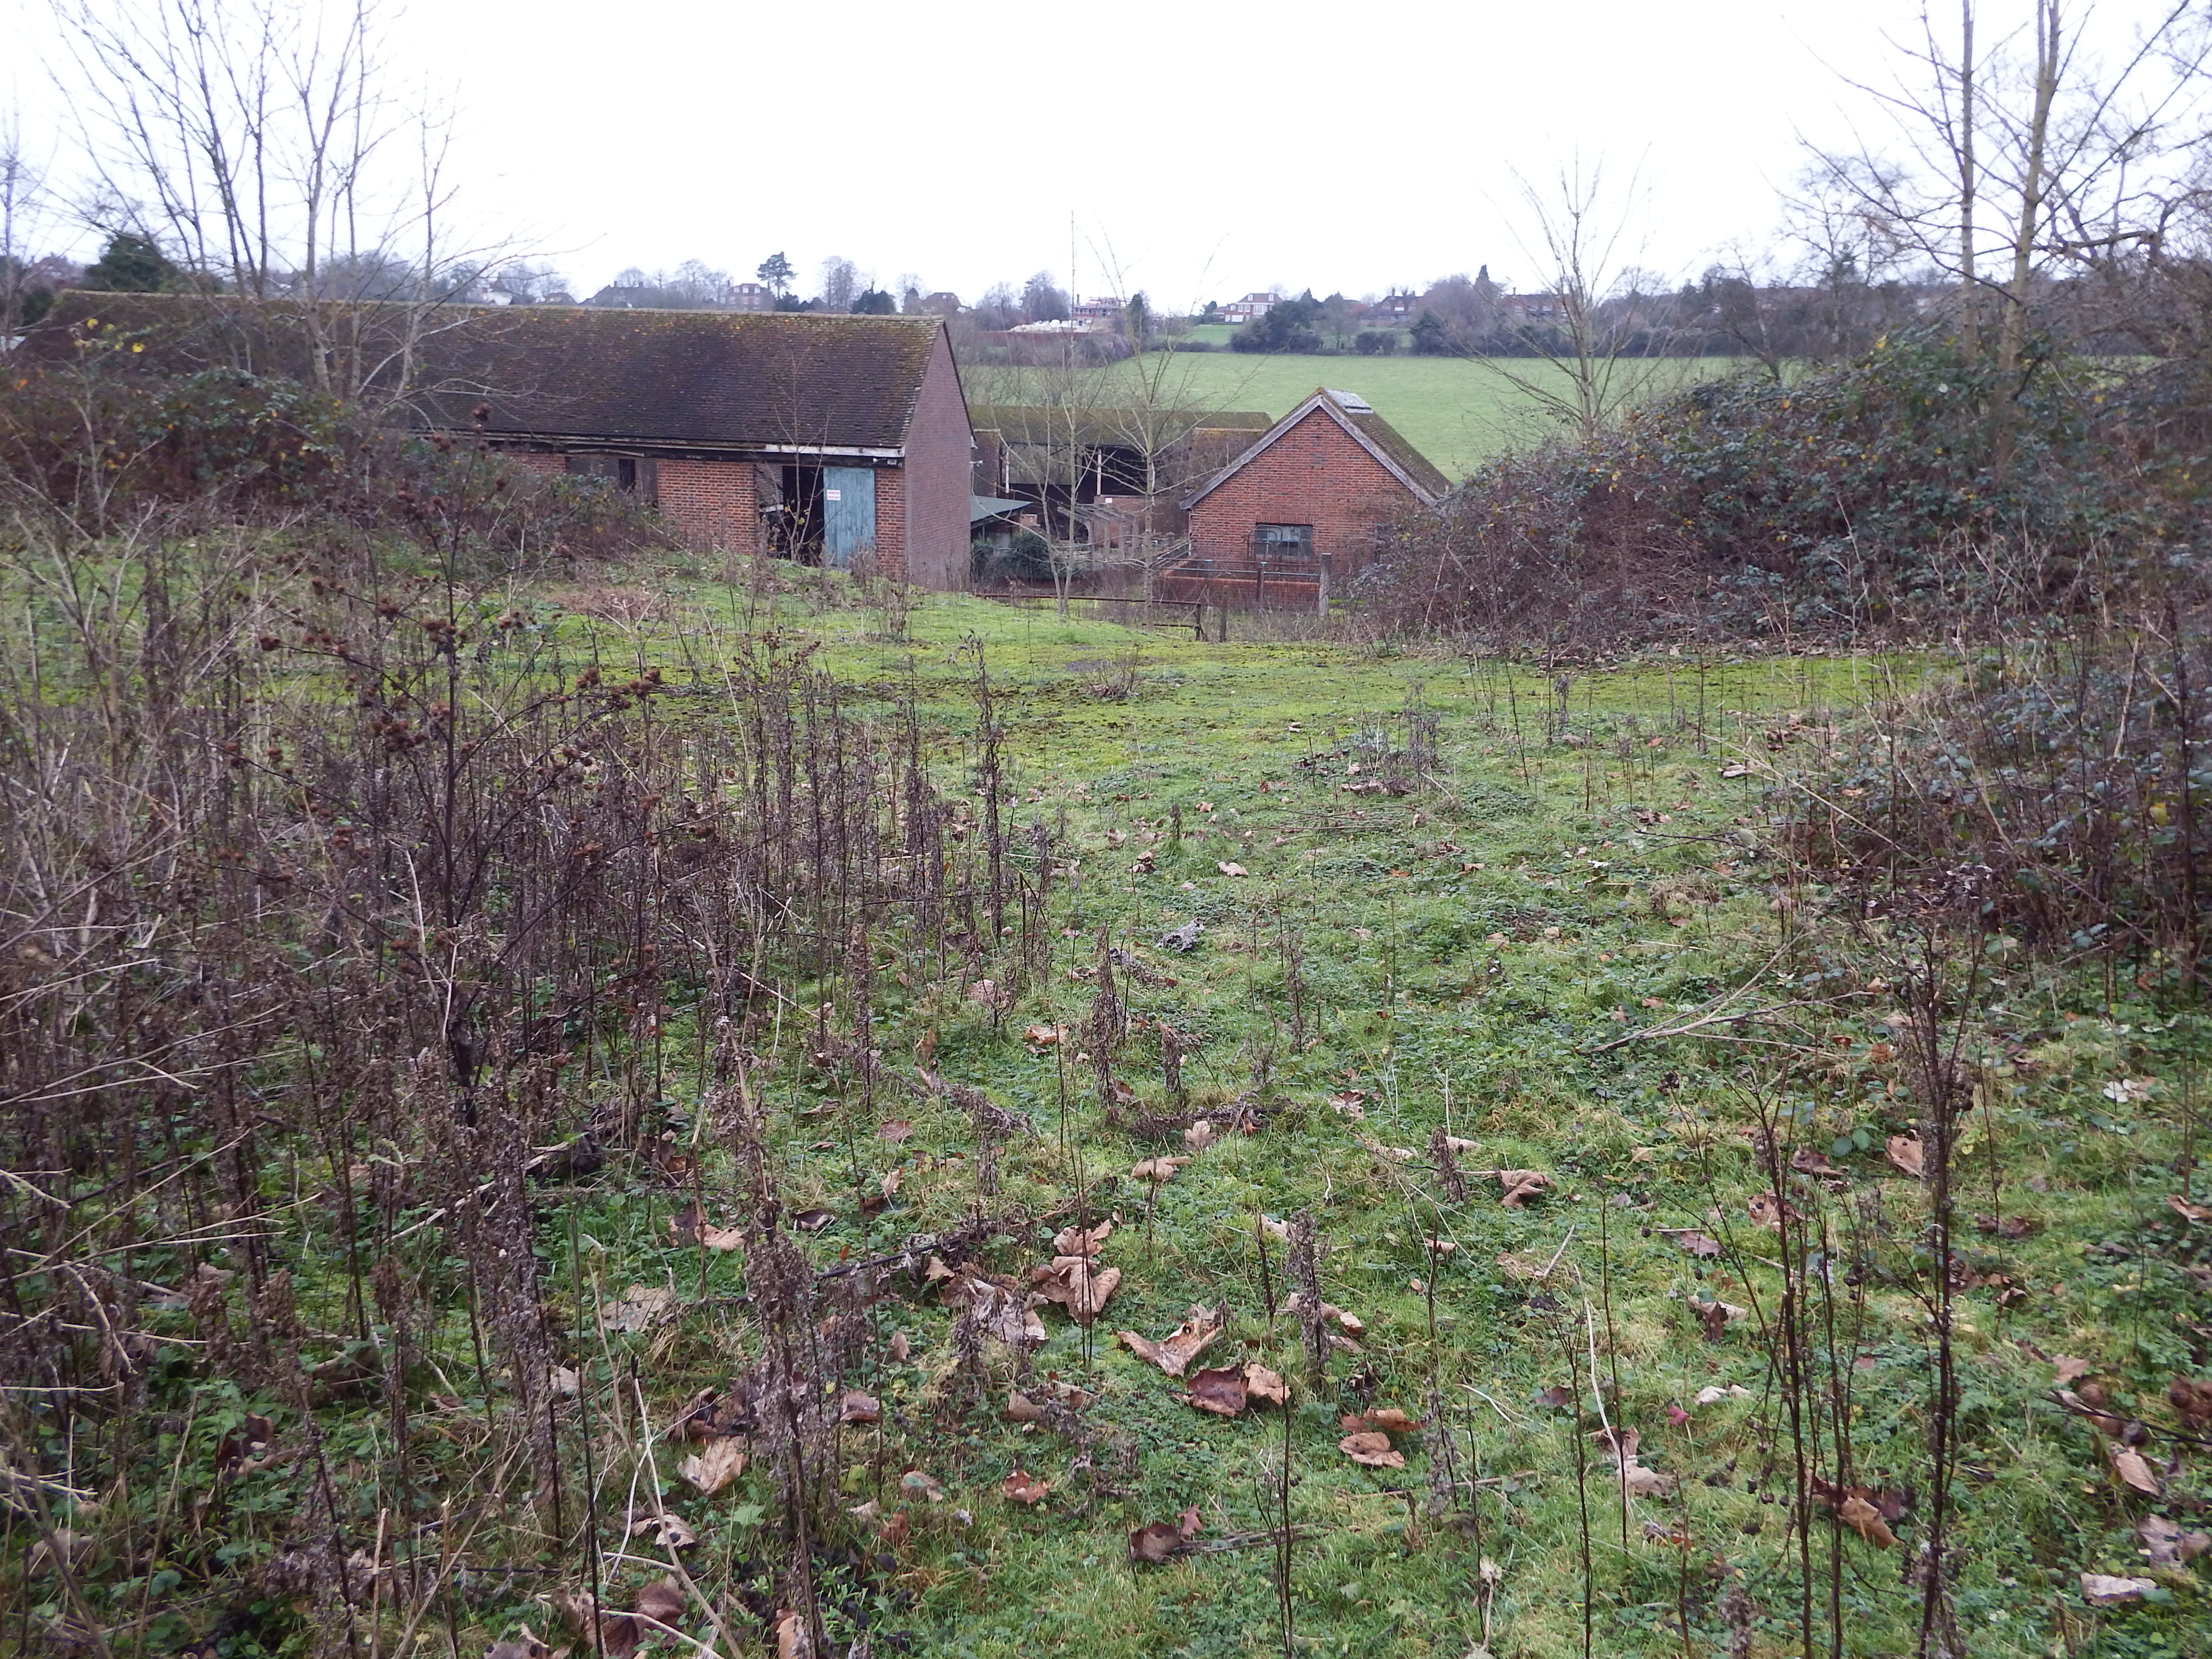 Standing on site of chapel looking north over derelict farm